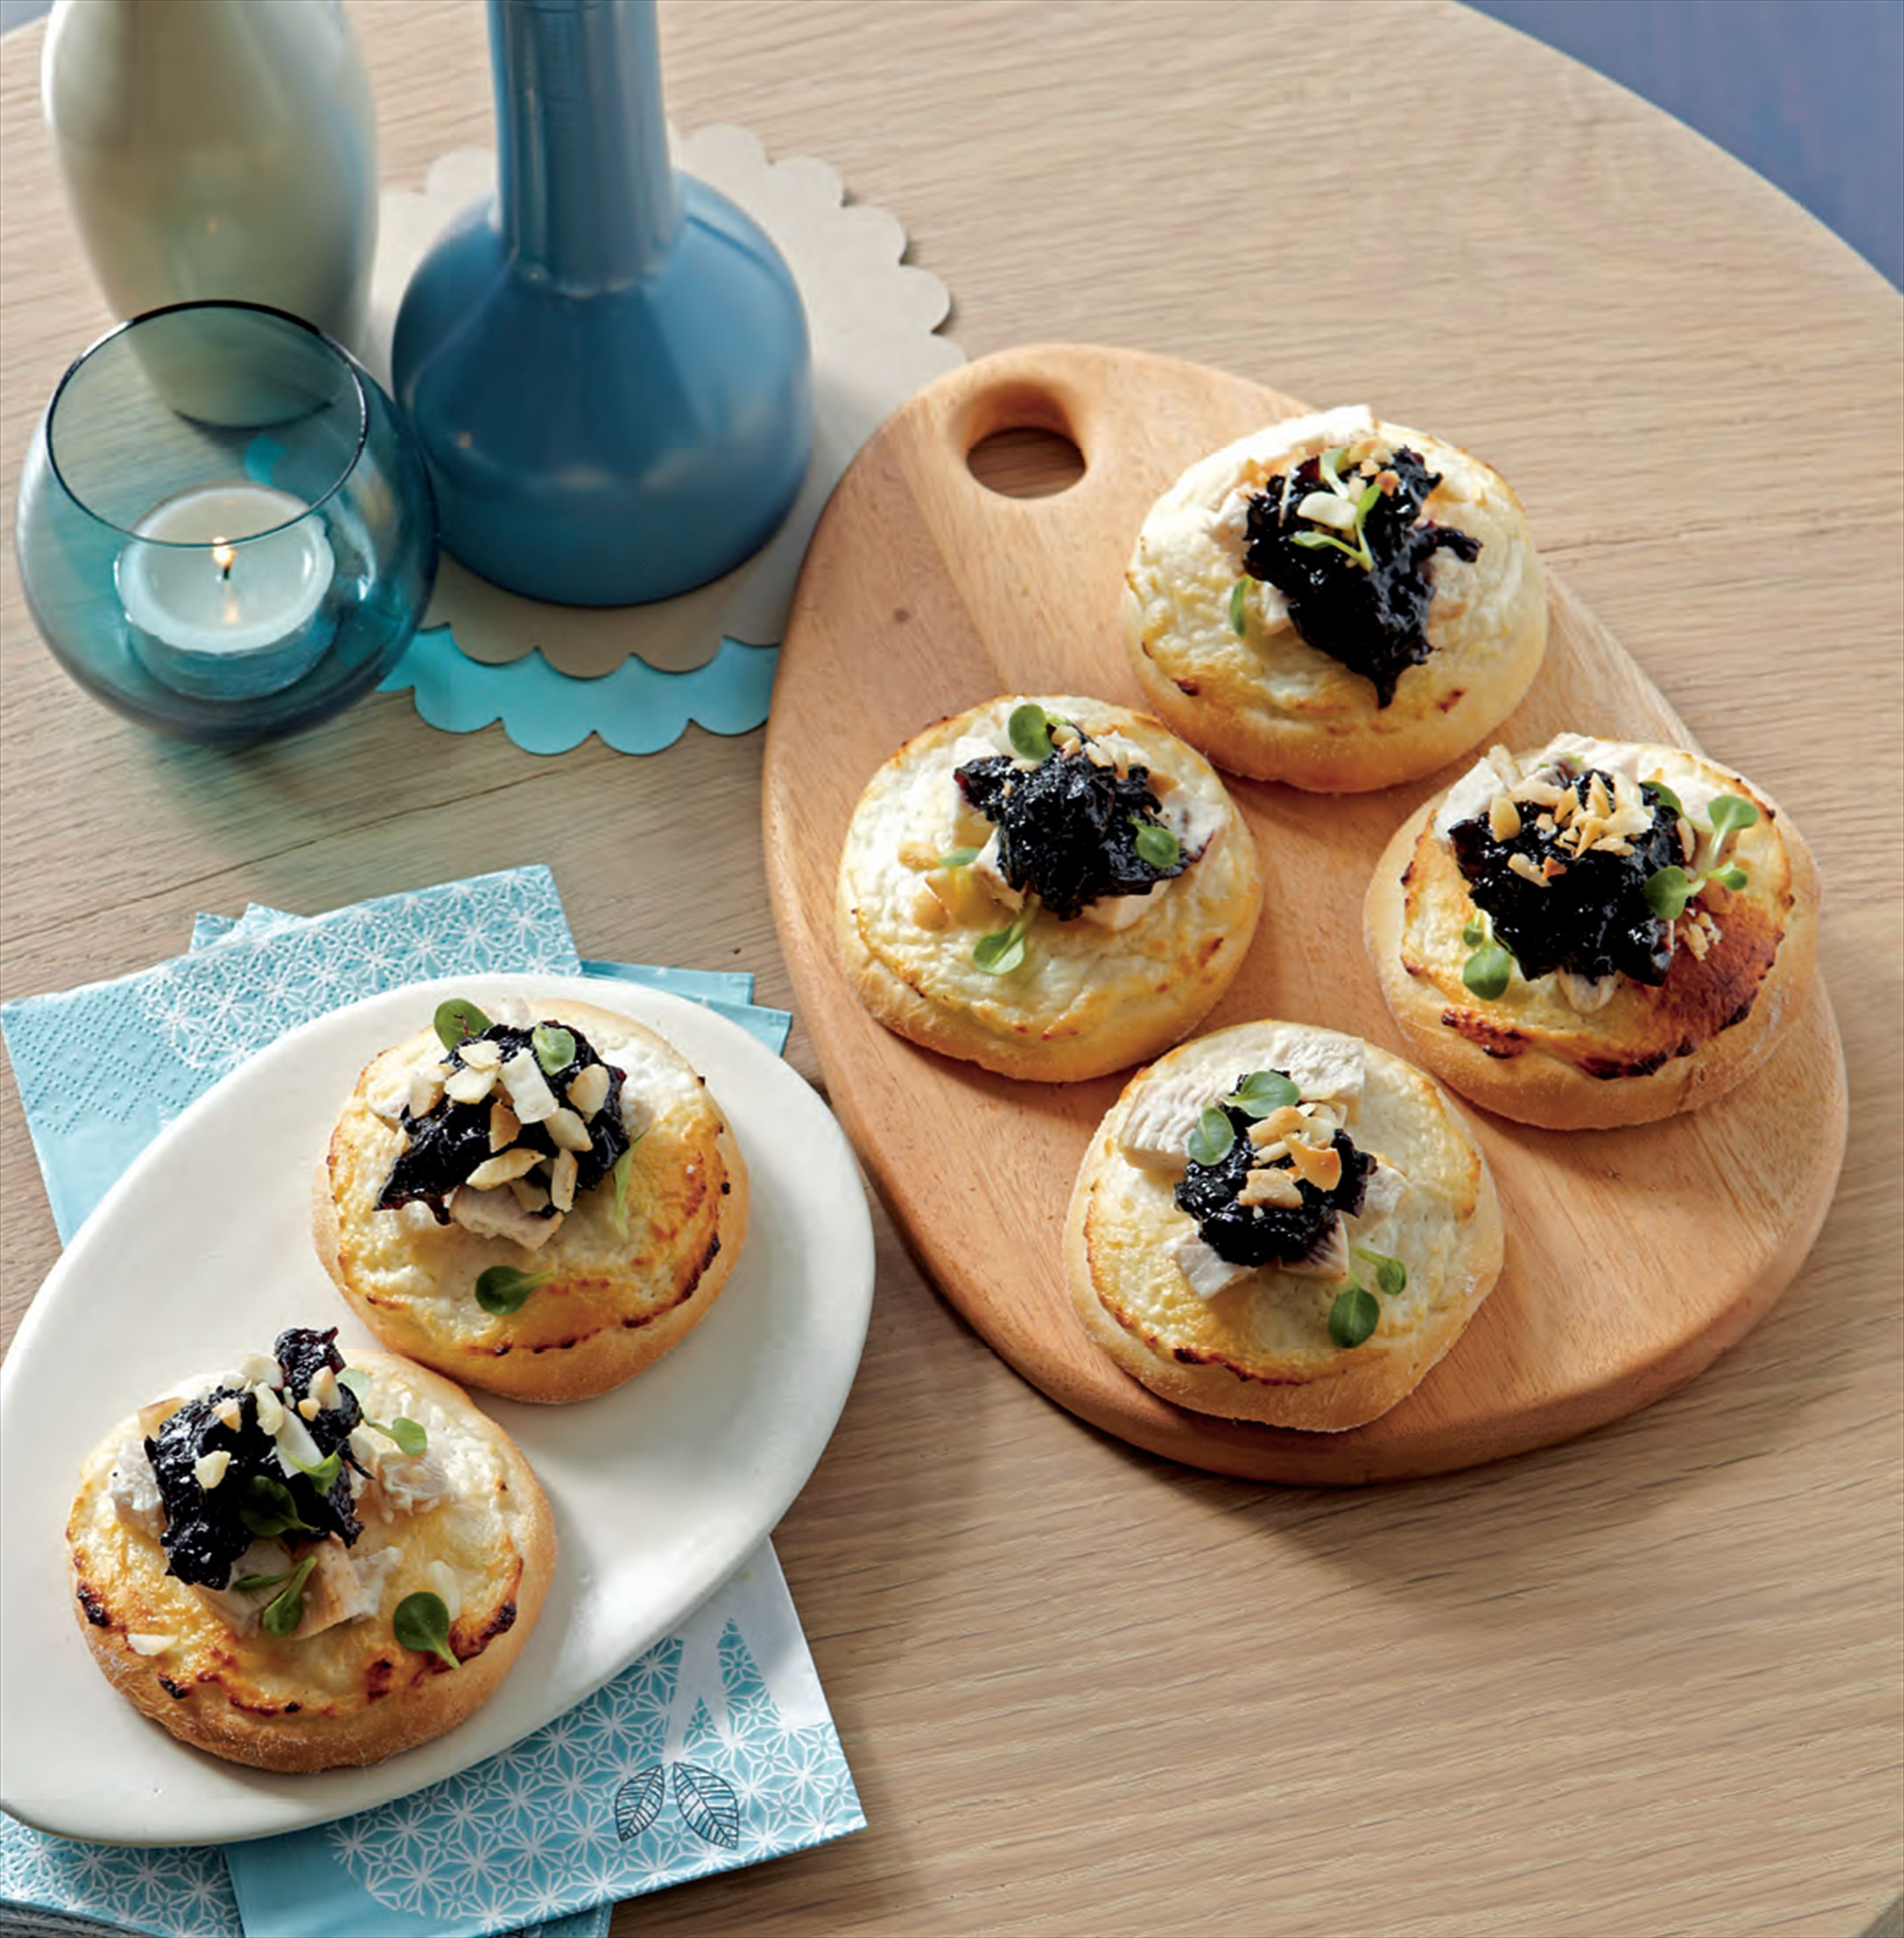 Chicken pizzettes with rosella paste and macadamia nuts